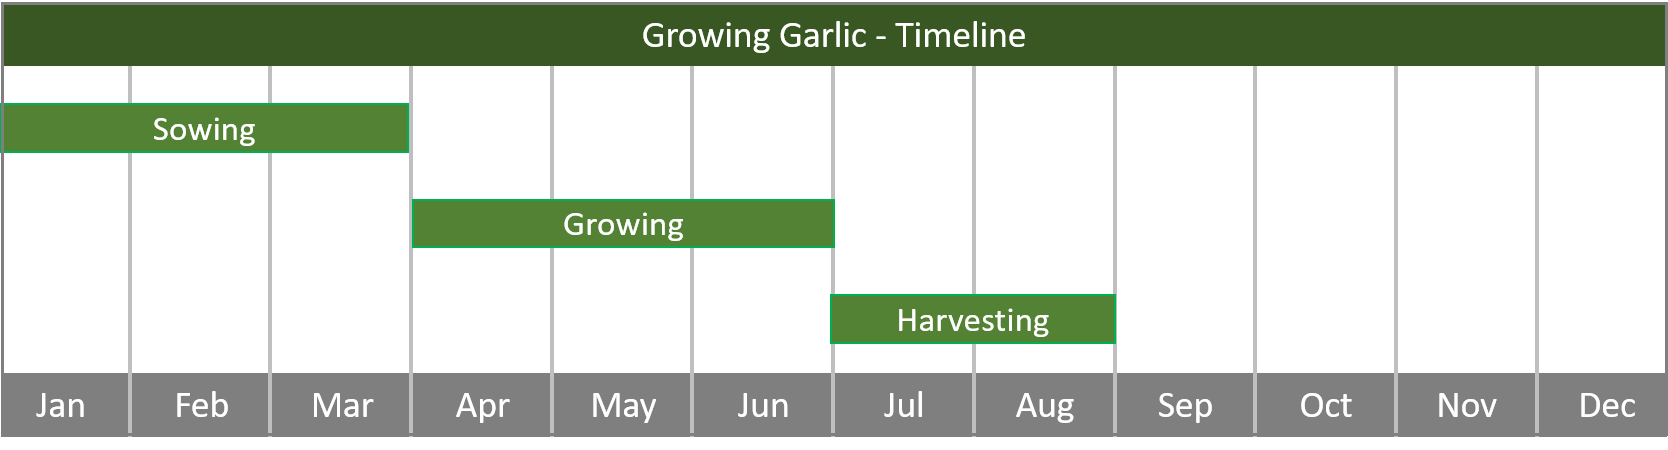 how to grow garlic from seed to harvest timeline